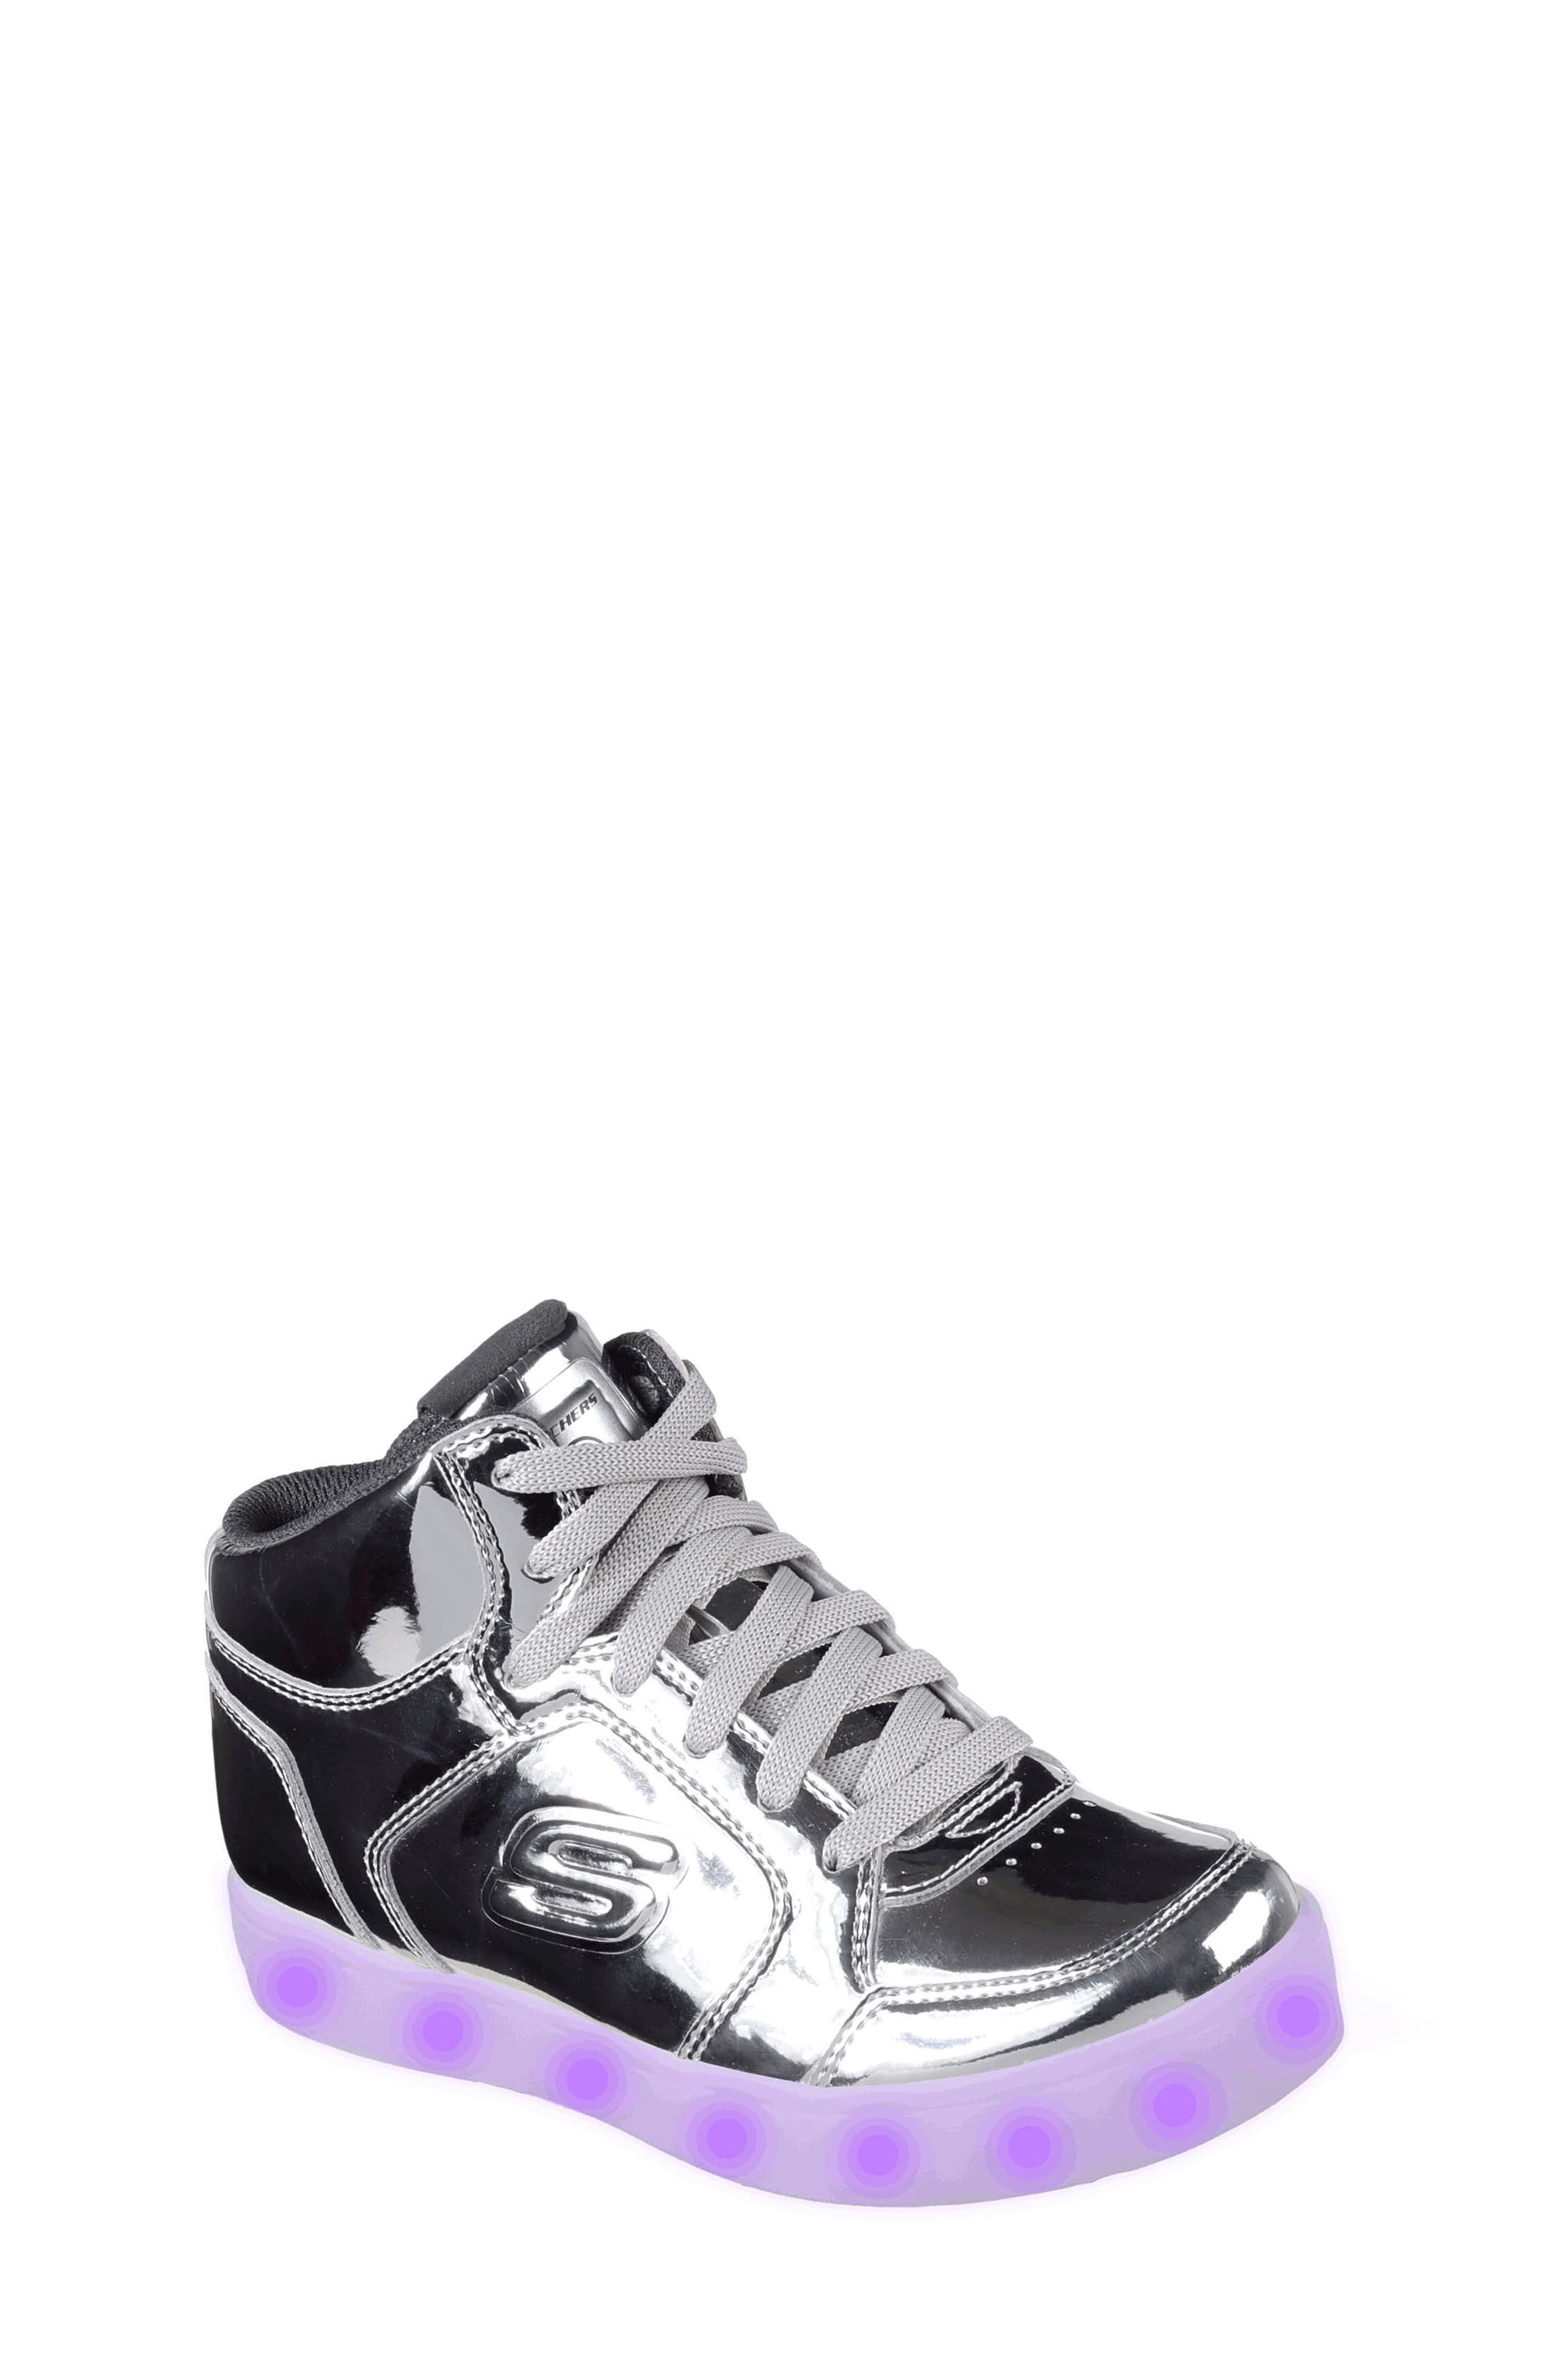 Energy Lights Metallic High Top Sneaker by Skechers